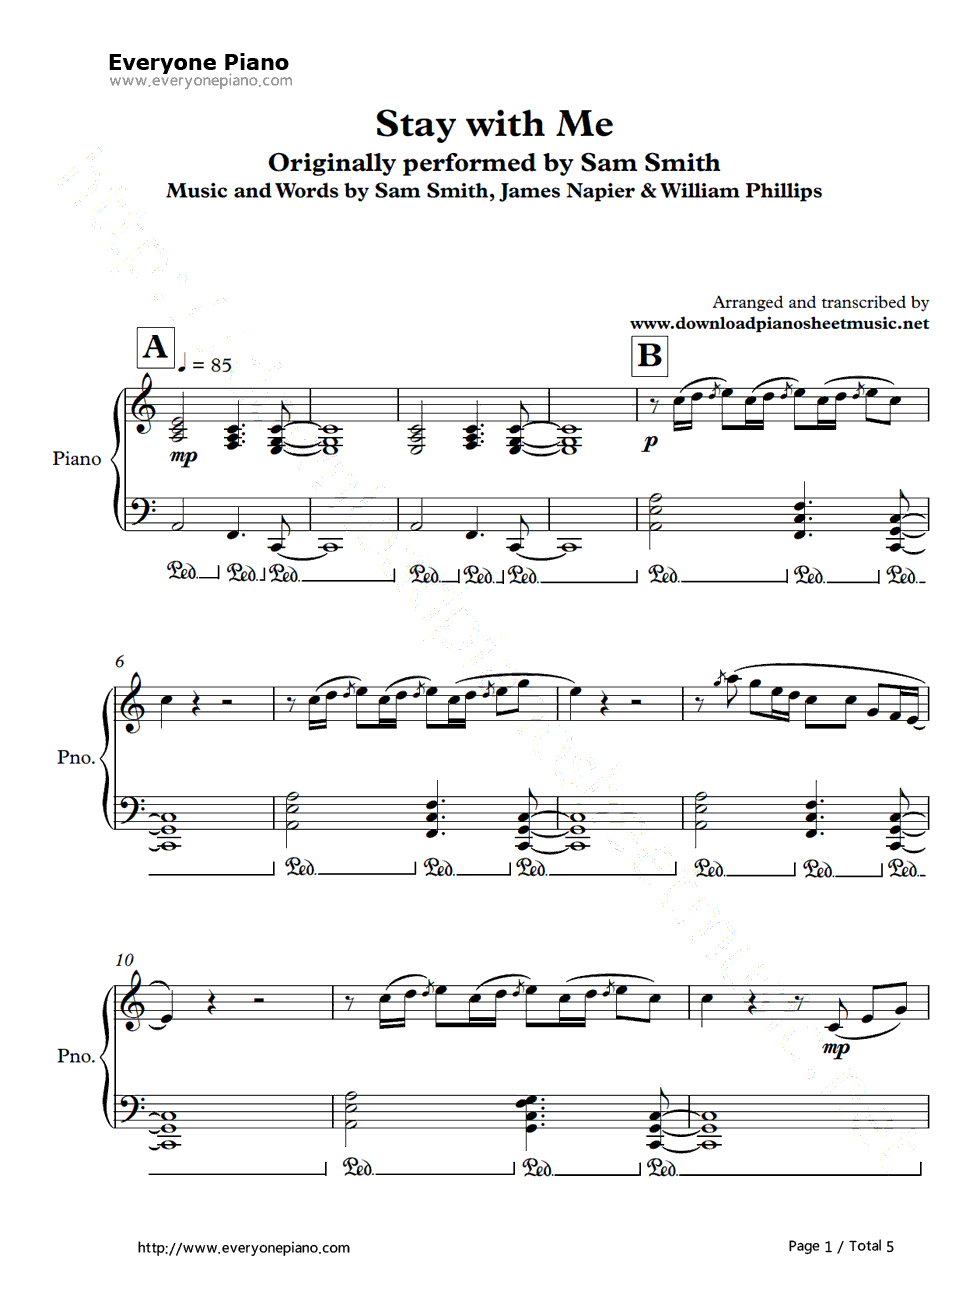 Stay with me piano sheet music pdf